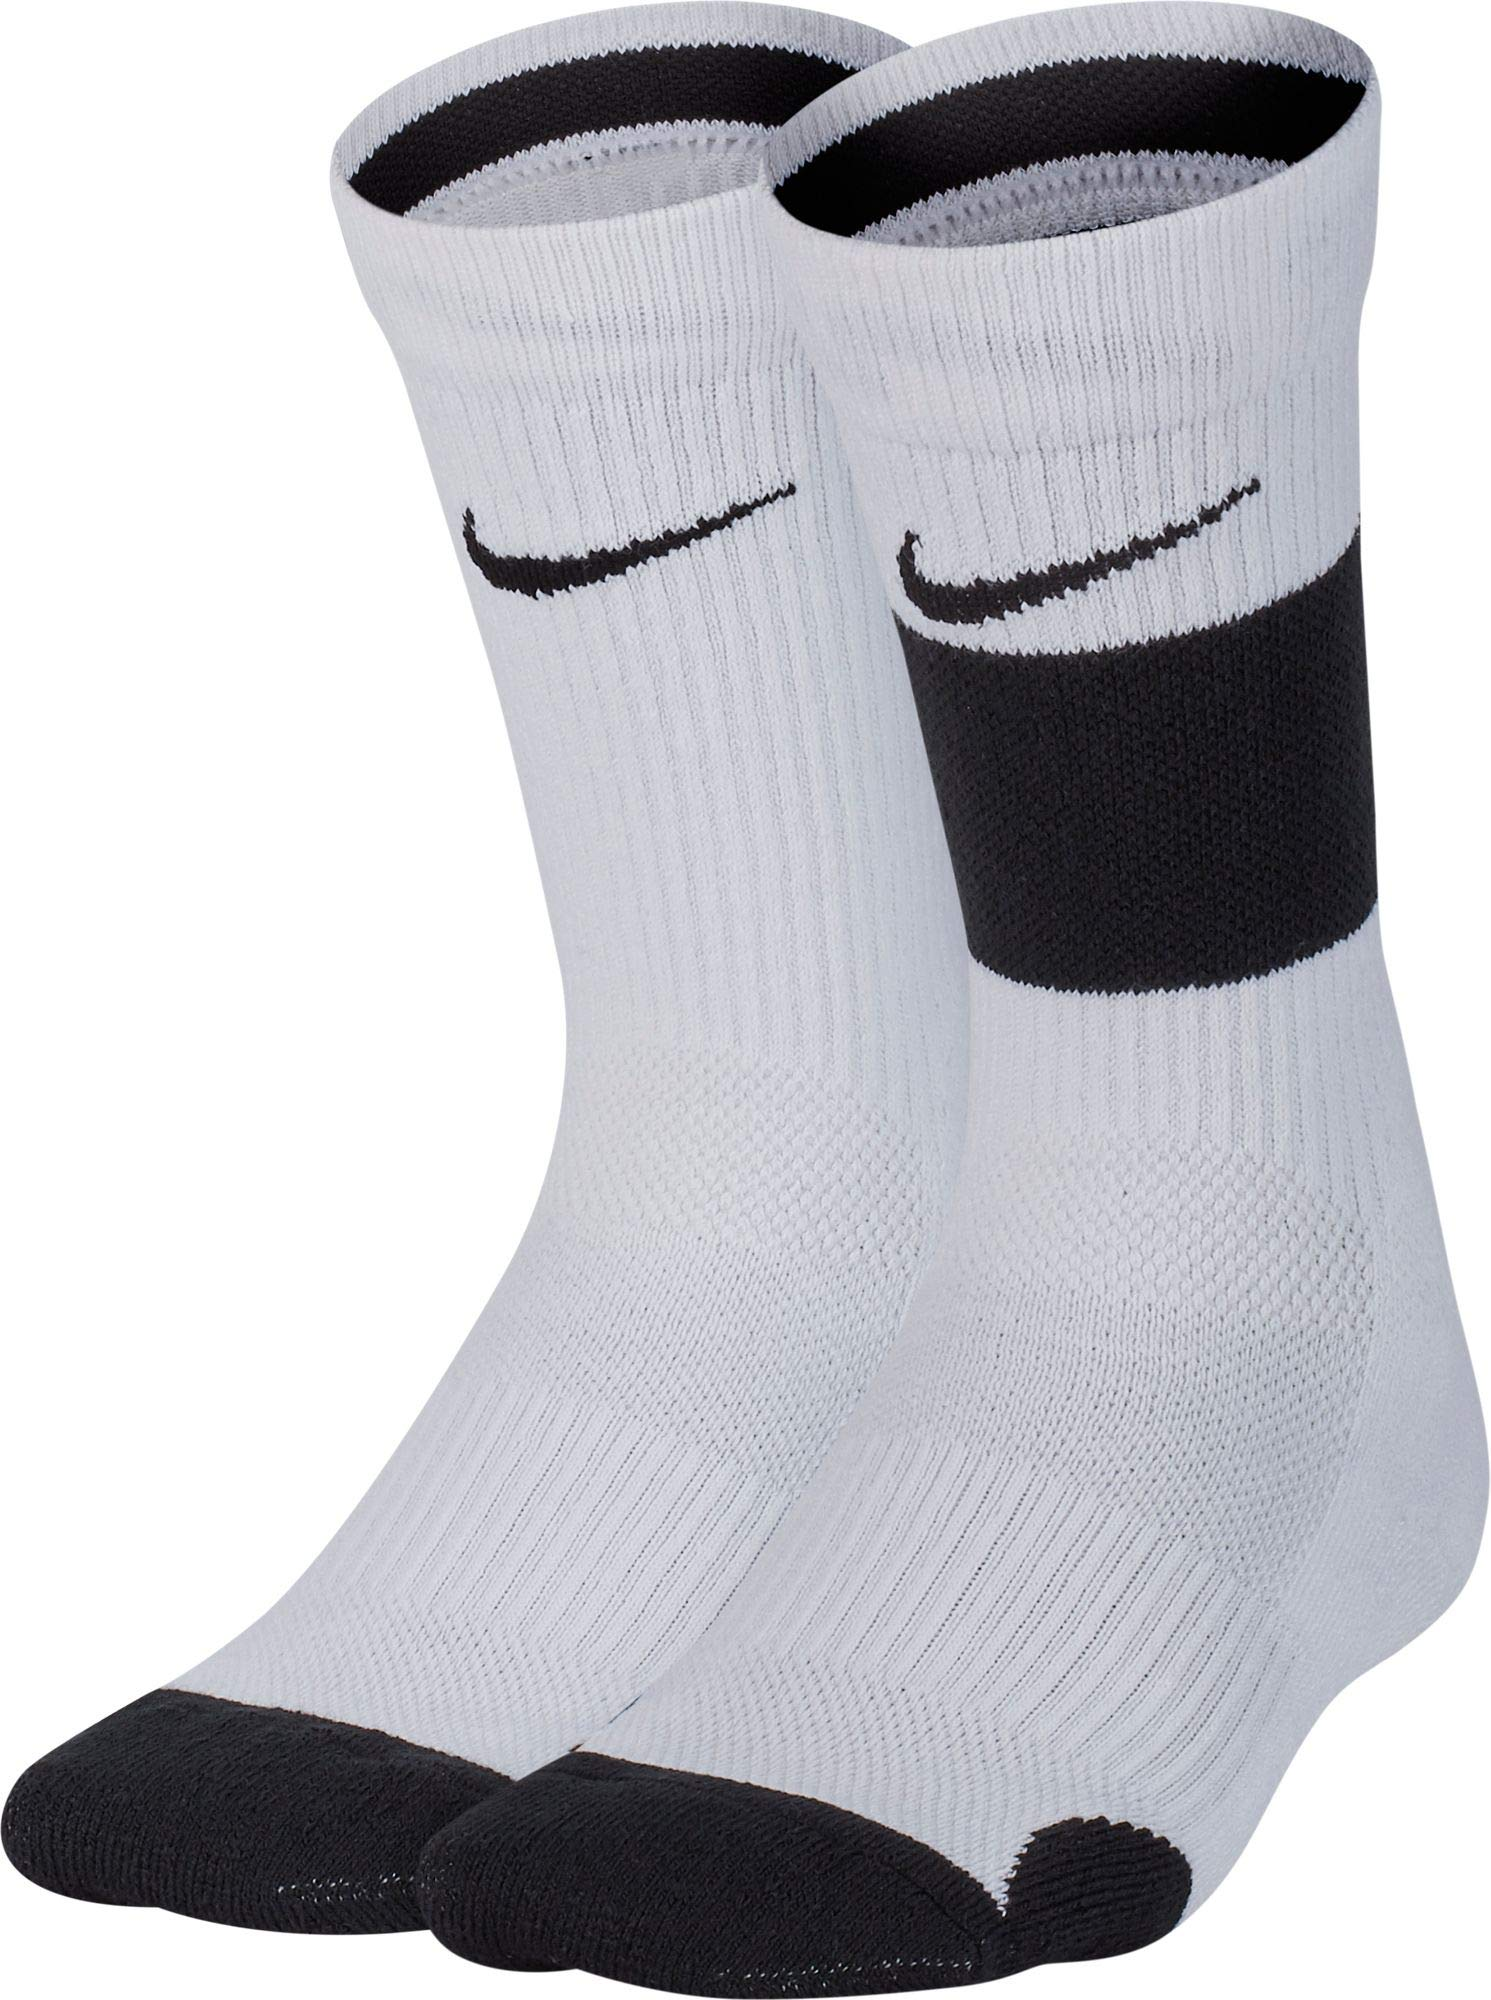 Nike Youth Elite Basketball Crew Socks 2 Pack (White/Black, Medium) by Nike